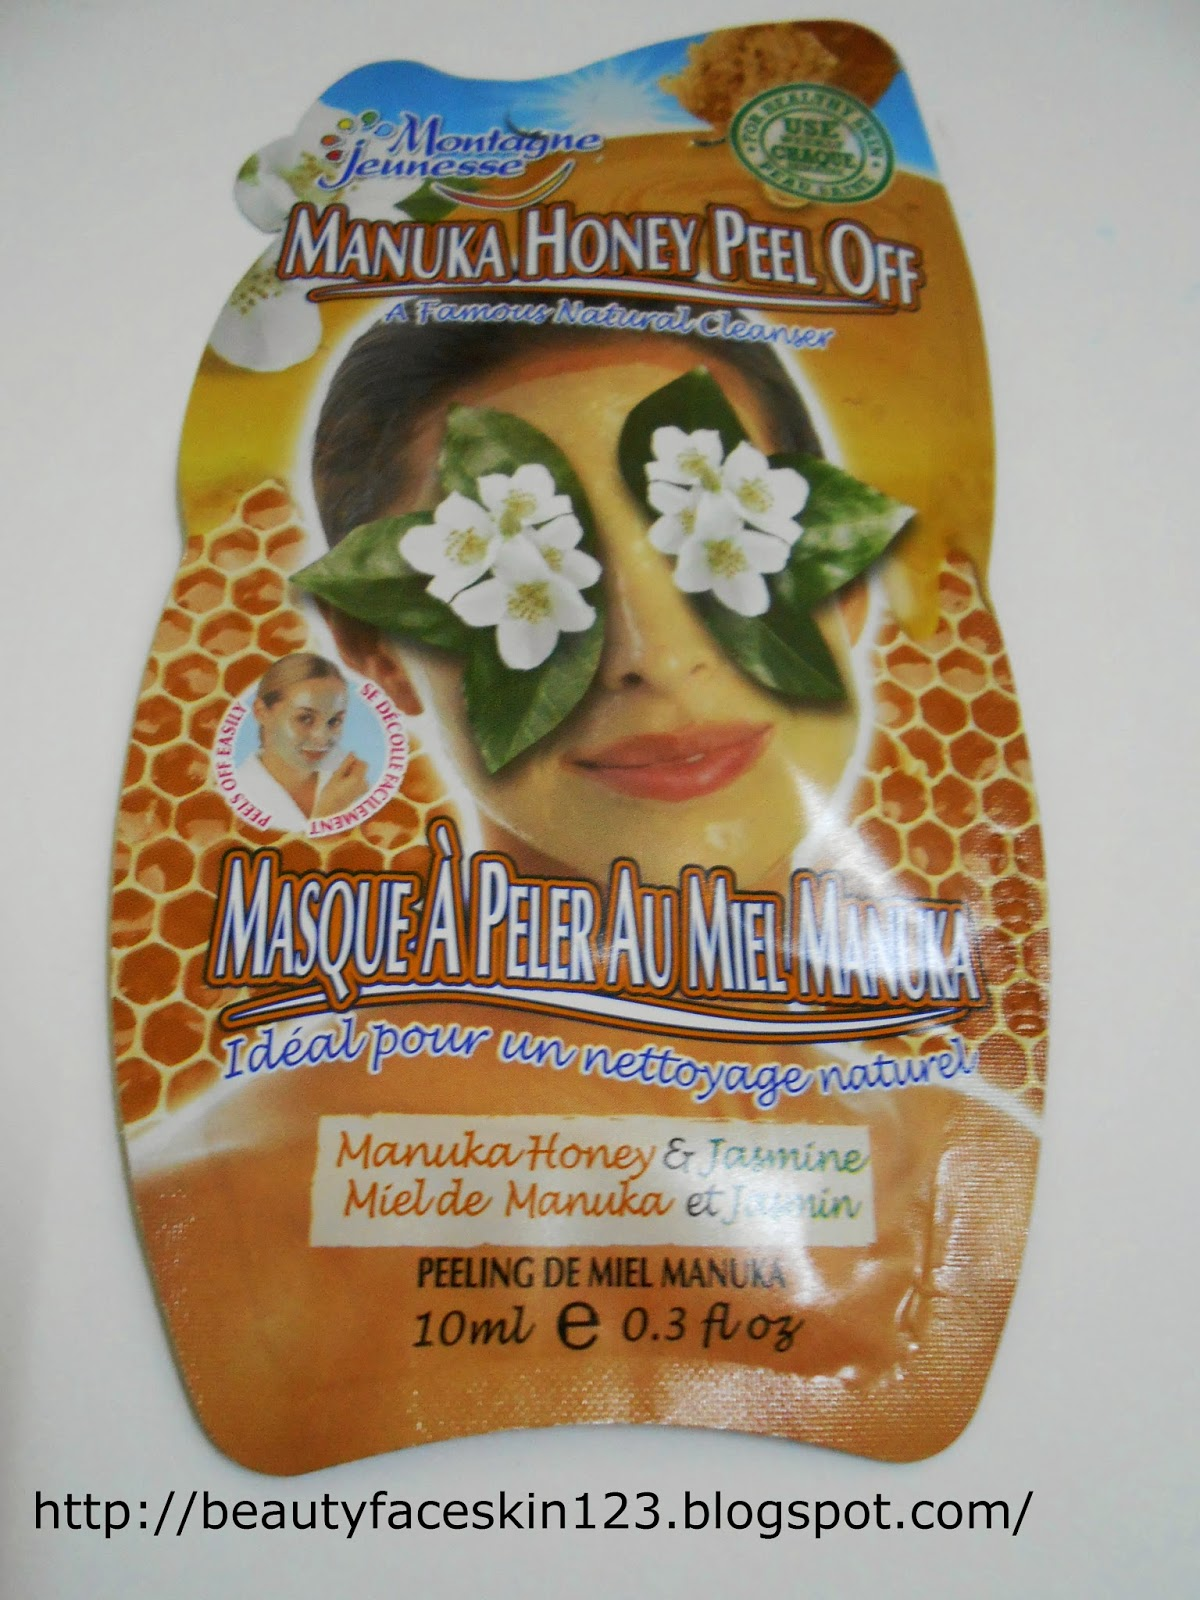 MONTAGNE JEUNESSE MANUKA HONEY PEEL OFF